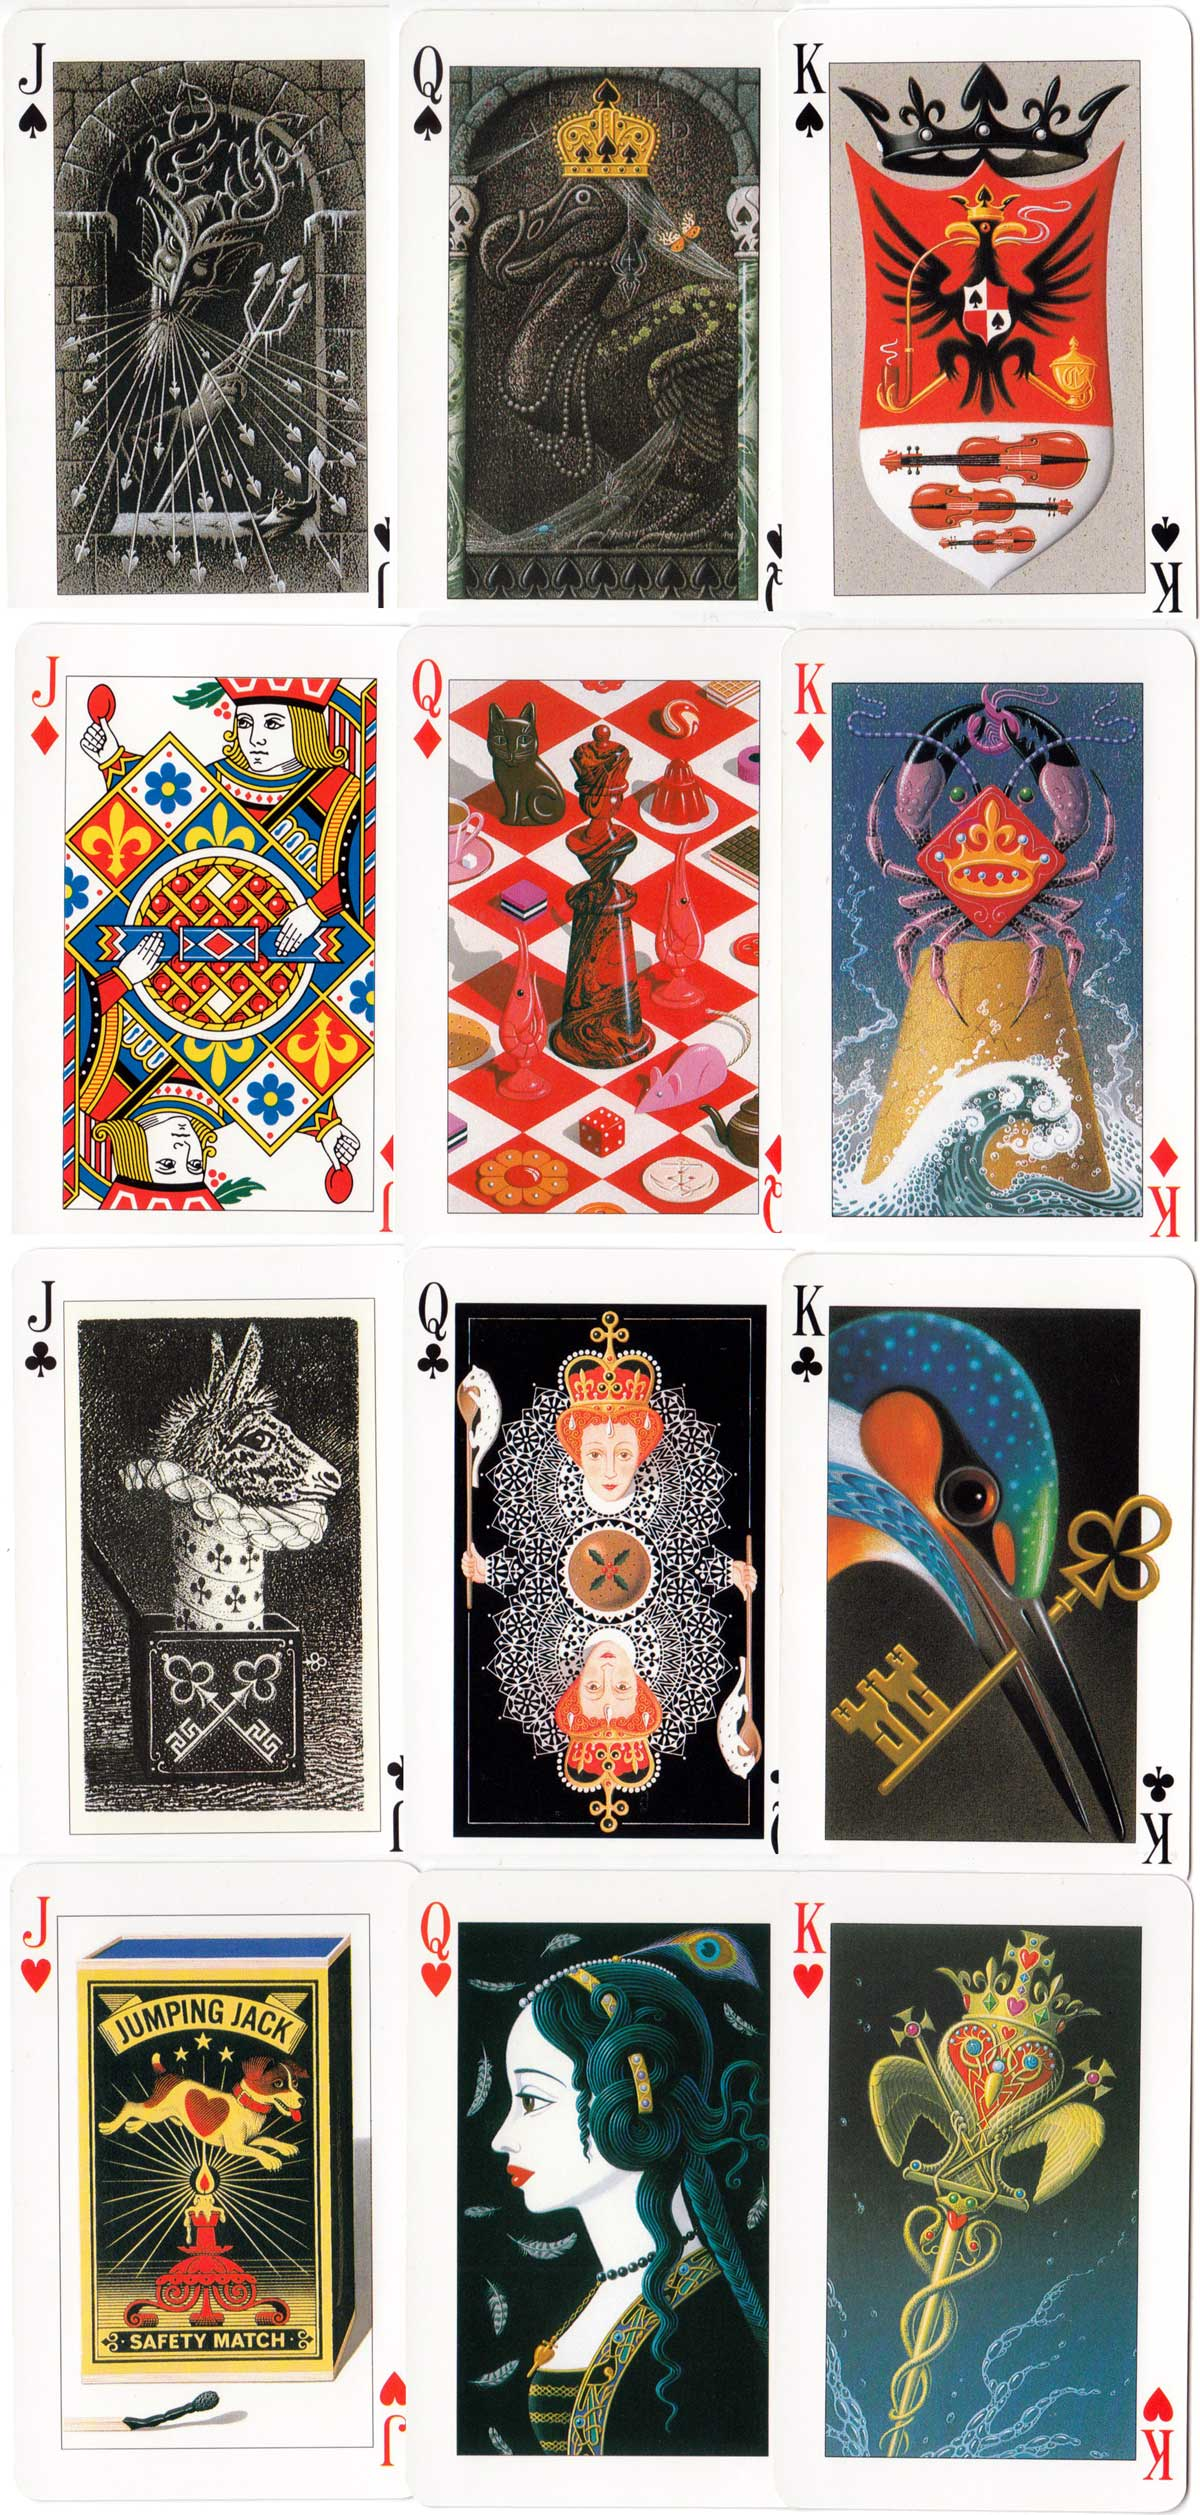 """Key to the Kingdom"" - an enchanted deck -  illuminated playing cards designed by Tony Meeuwissen, 1992. © Pavilion Books Company Limited"